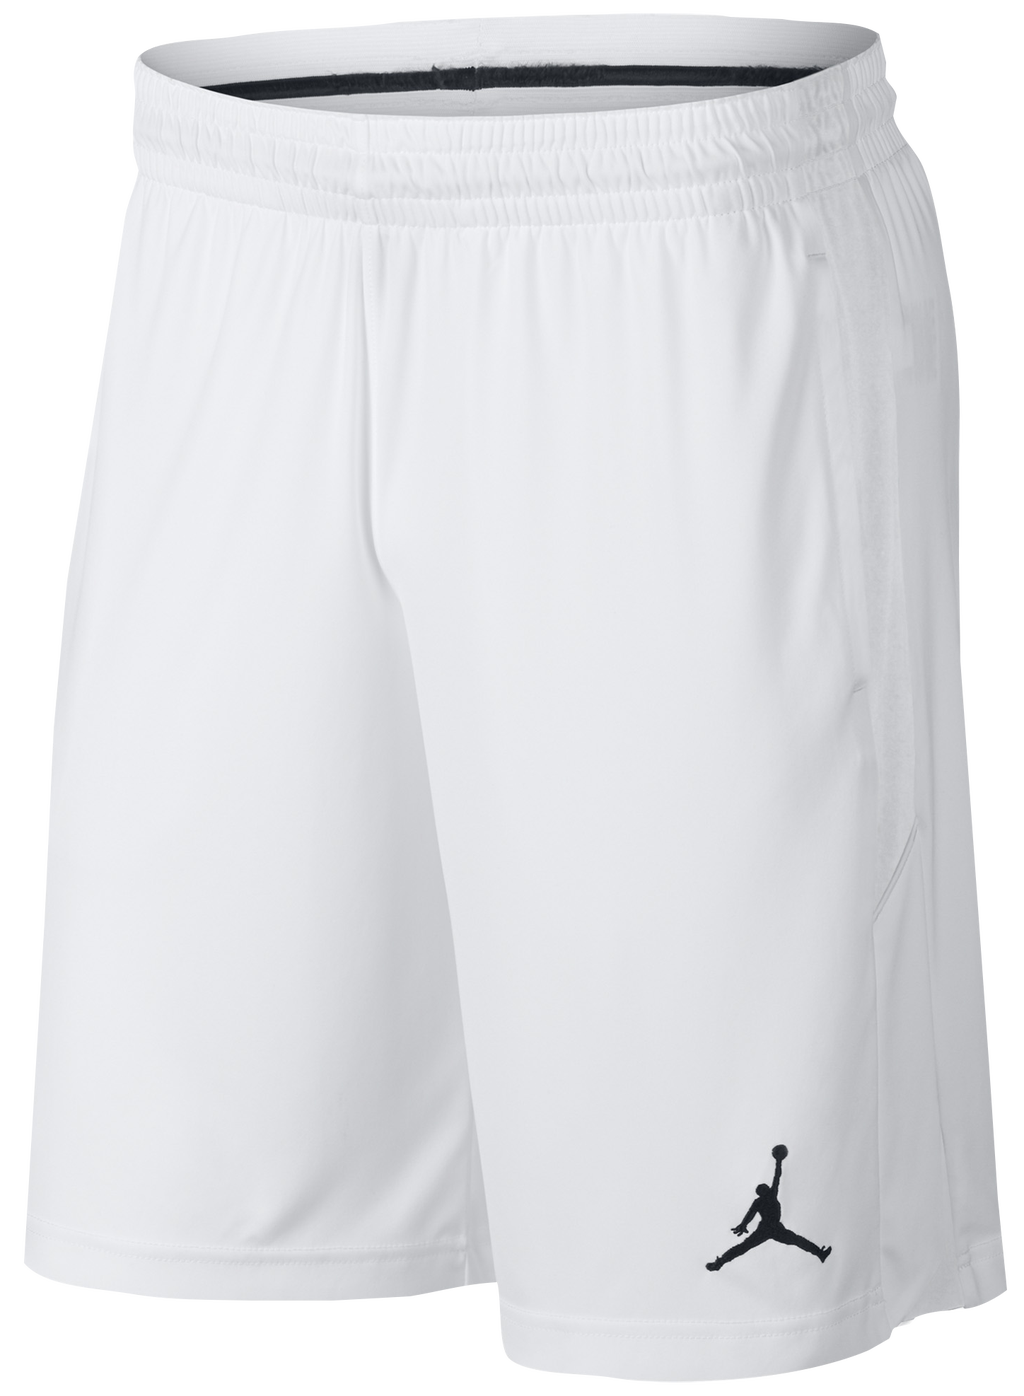 Jordan 23 Alpha Dry Knit Shorts by Jordan